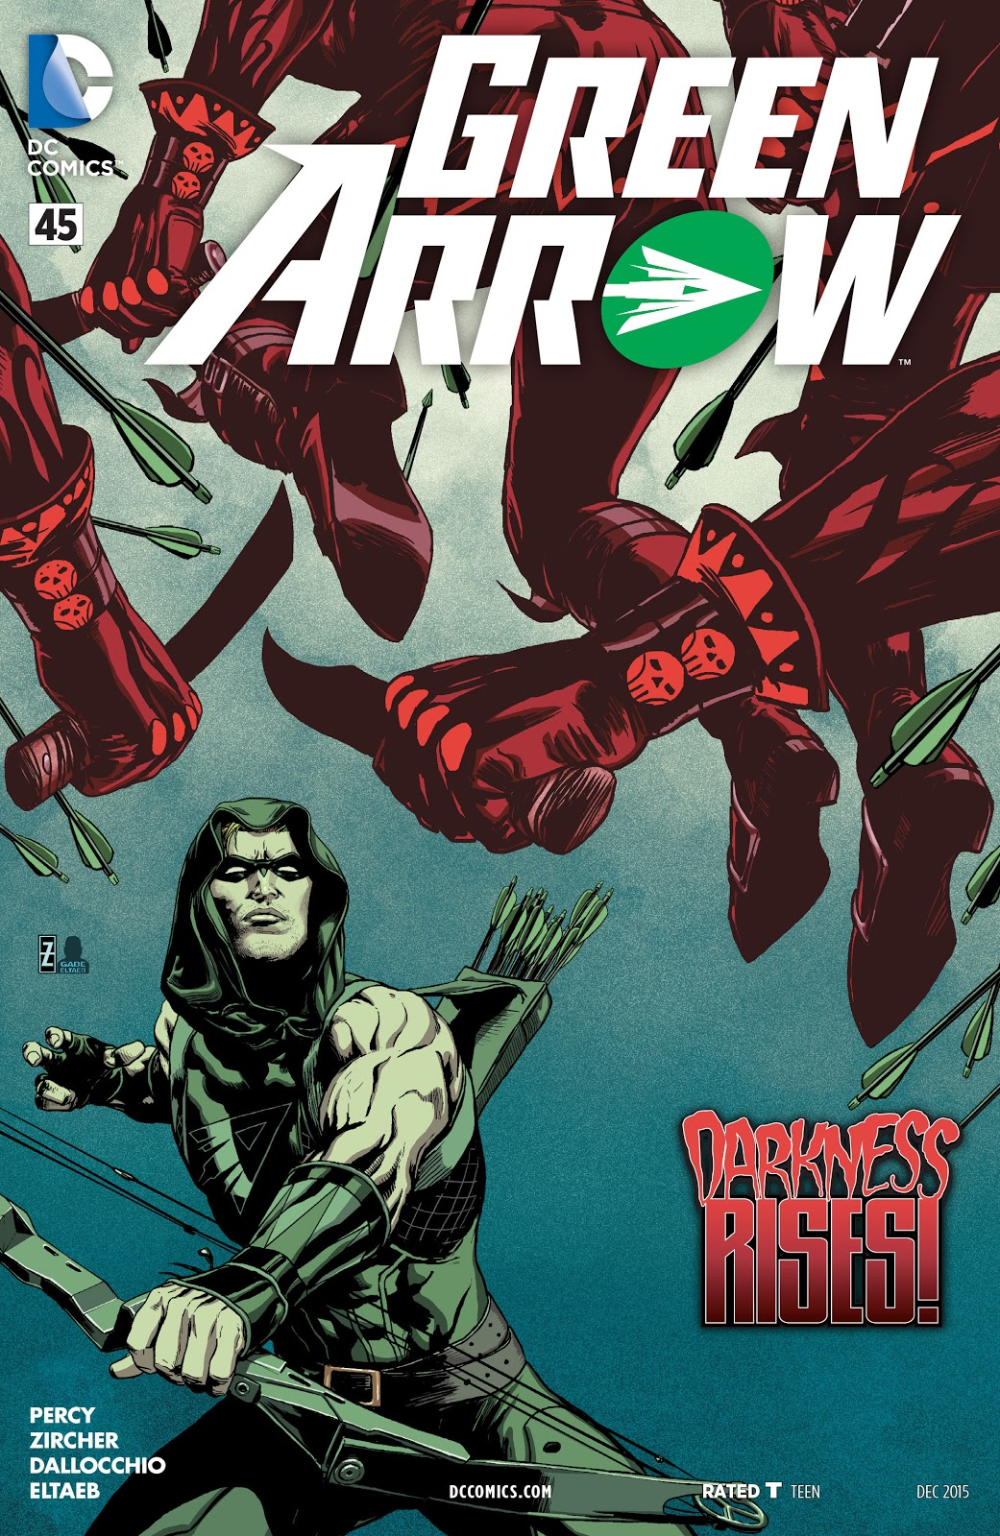 Green Arrow 2011 Issue 45 Read Green Arrow 2011 Issue 45 Comic Online In High Quality In 2020 Green Arrow Comics Dc Comics